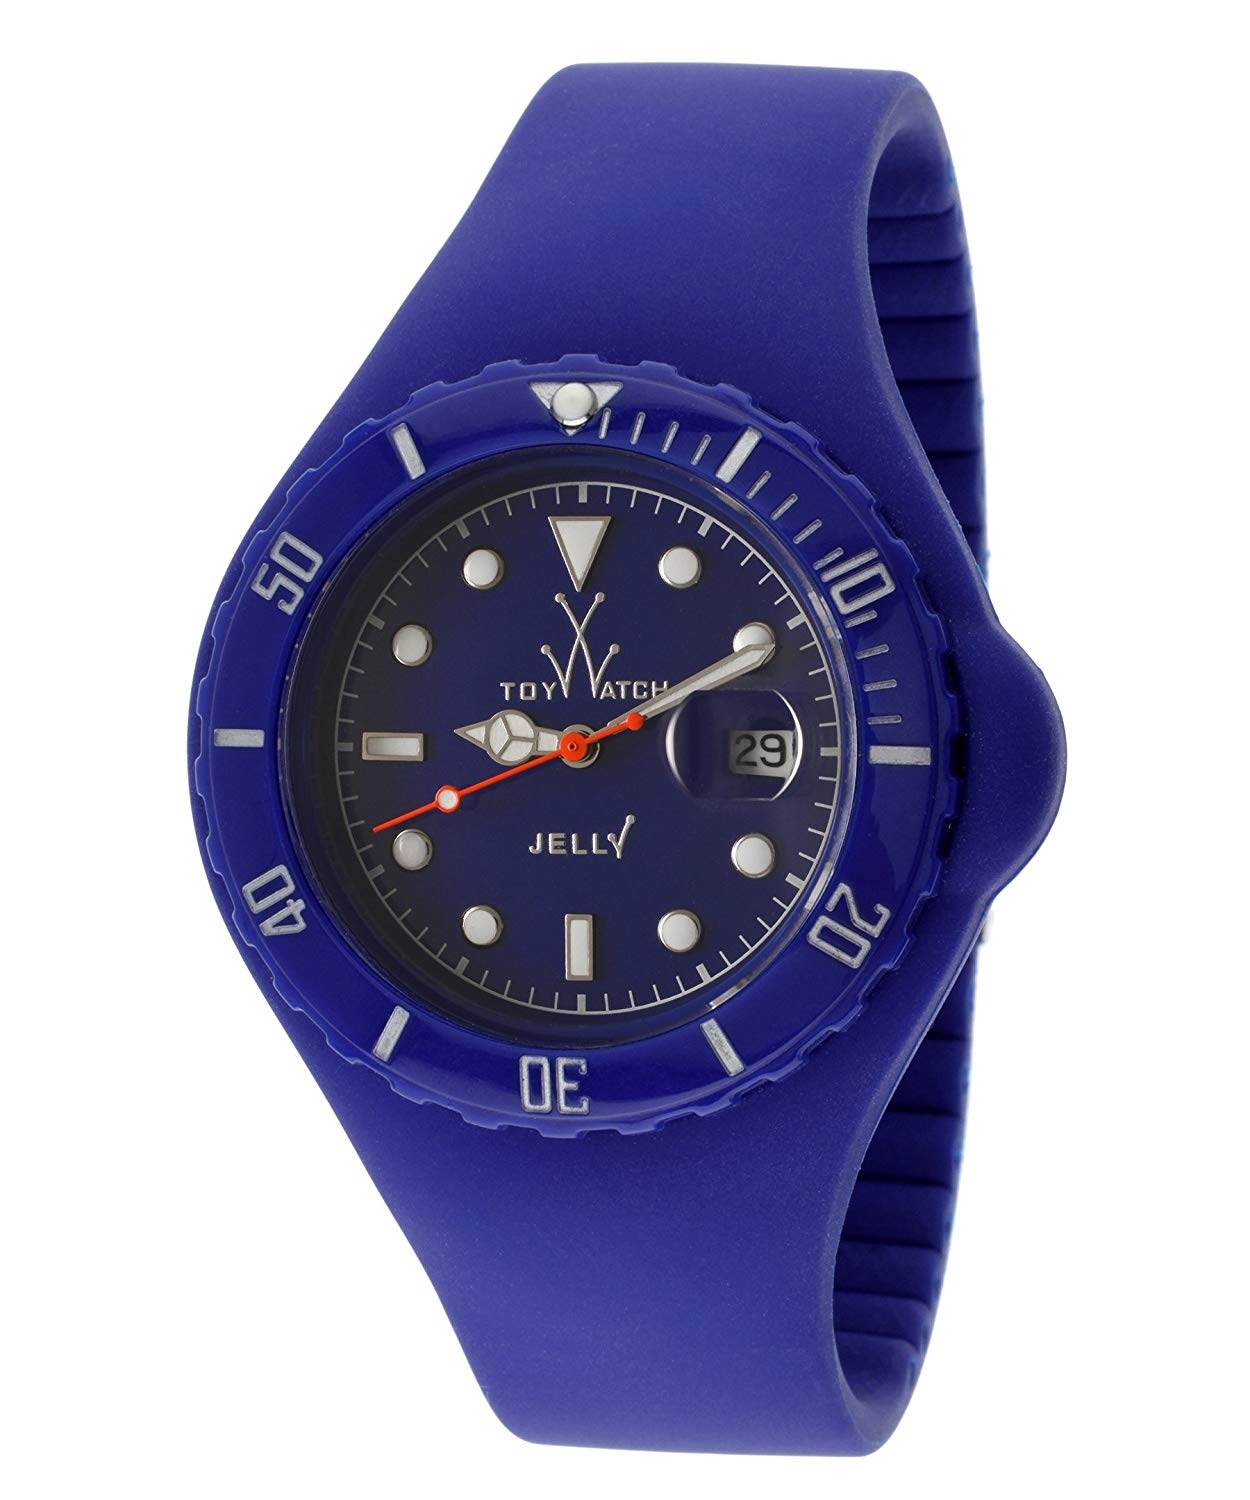 Watch_Toy_Watch_Polycarbonate_Blue_Blue_Unisex_-_Men_And_Women_Jy07bl